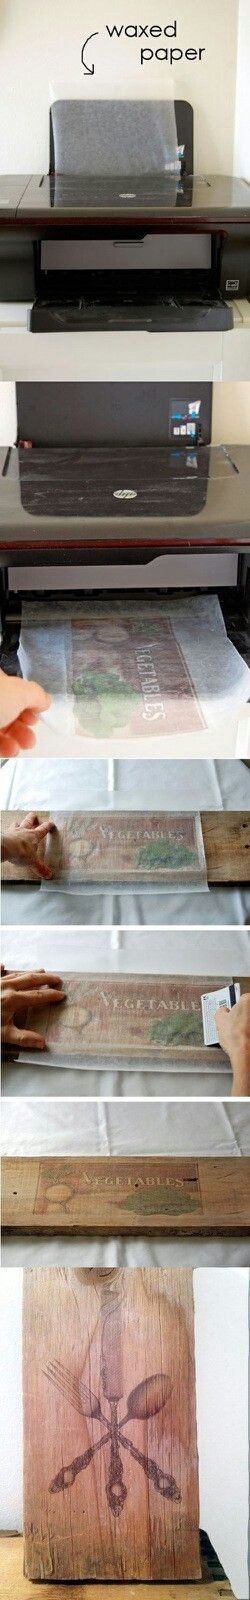 wax paper to wood transfer i see what you did there. Black Bedroom Furniture Sets. Home Design Ideas